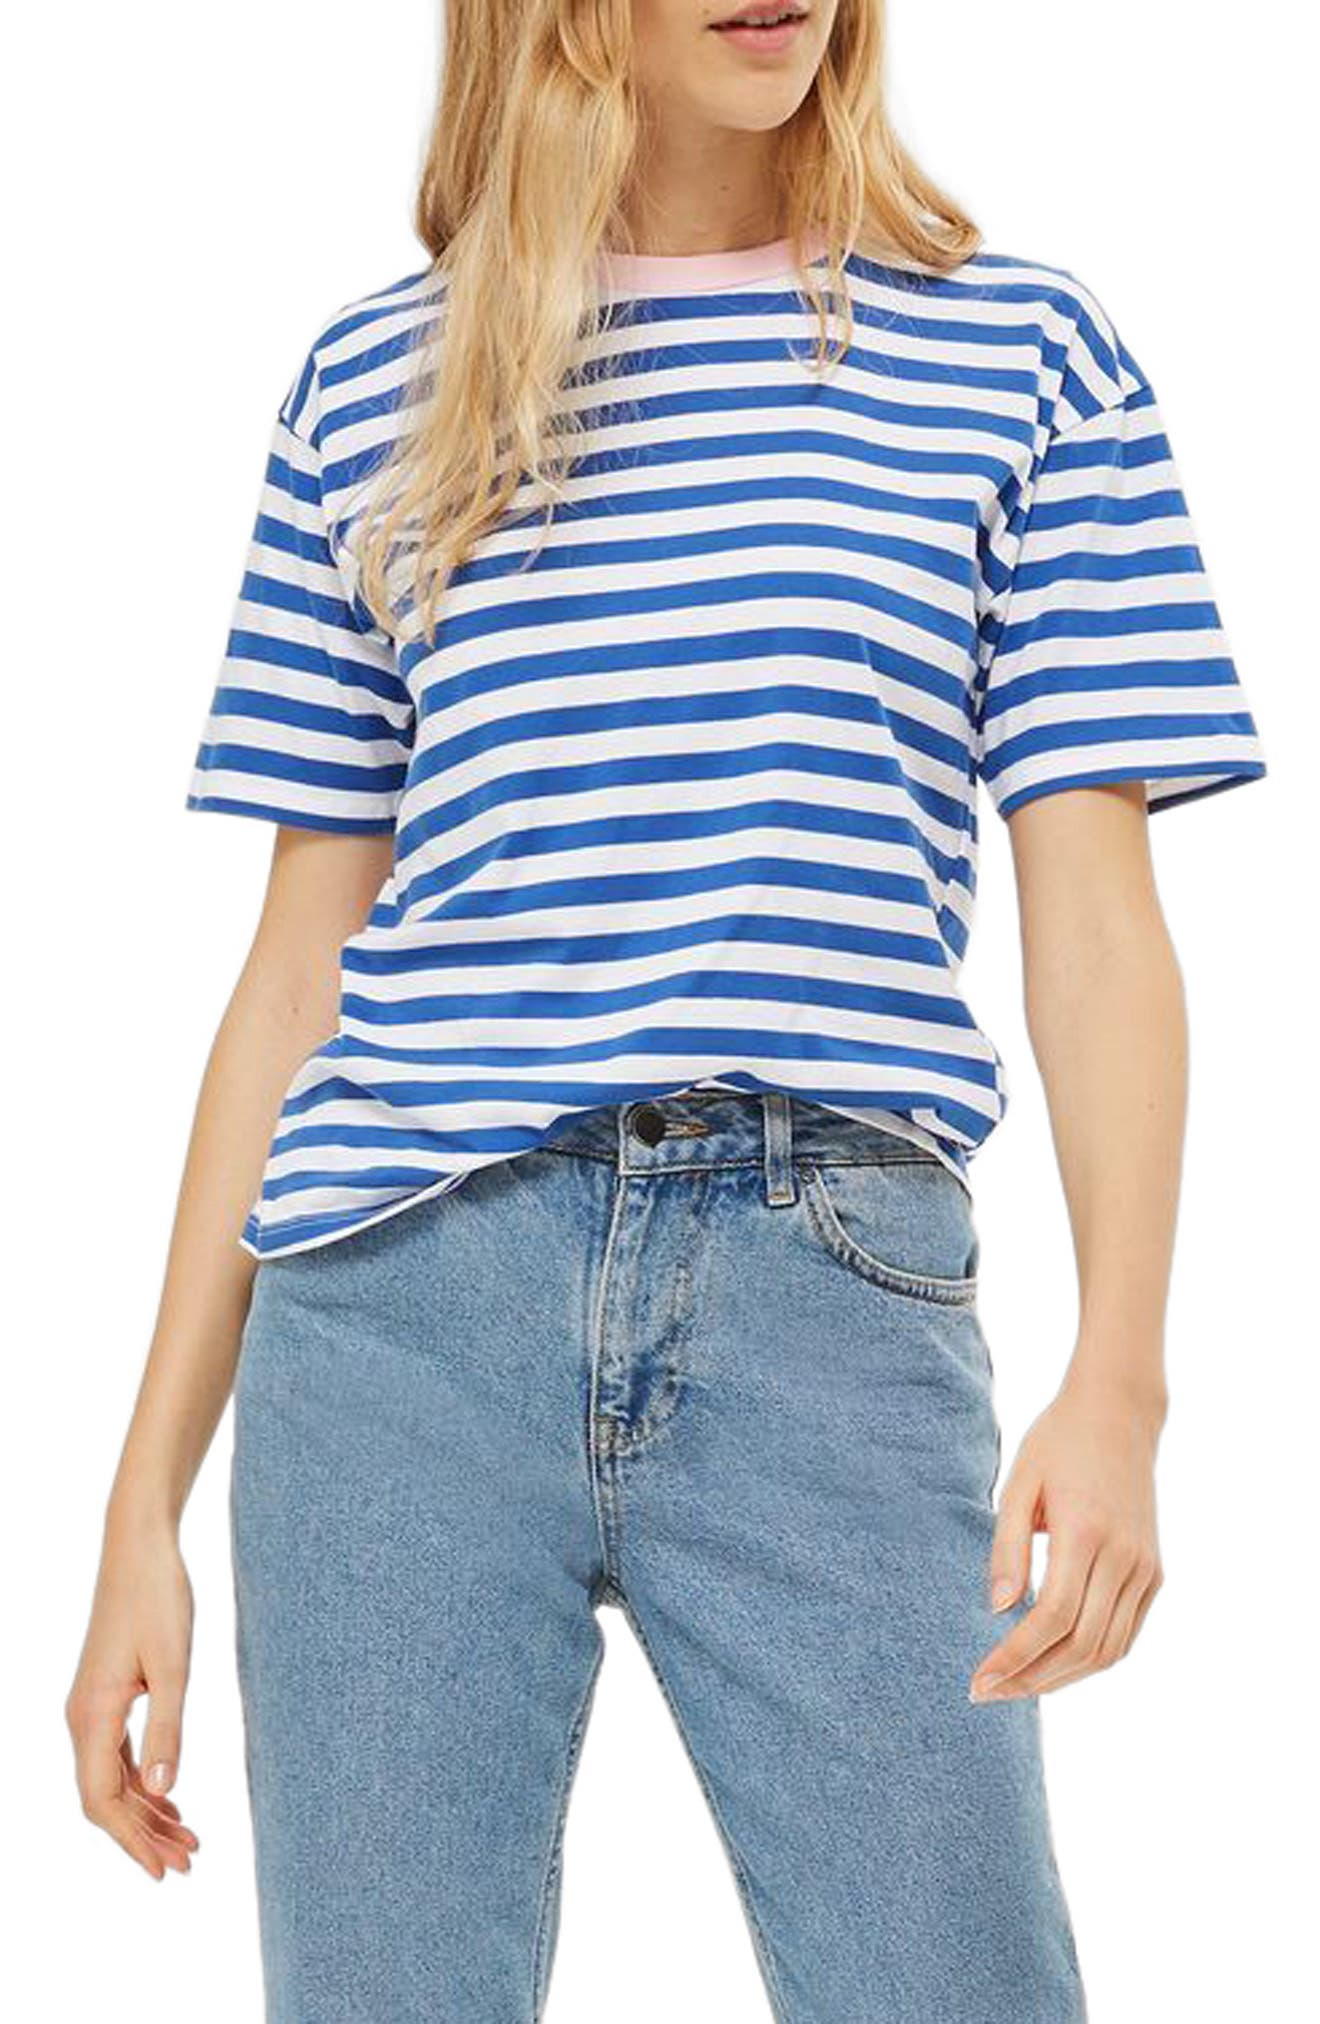 Alternate Image 1 Selected - Topshop Contrast Neck Stripe Tee